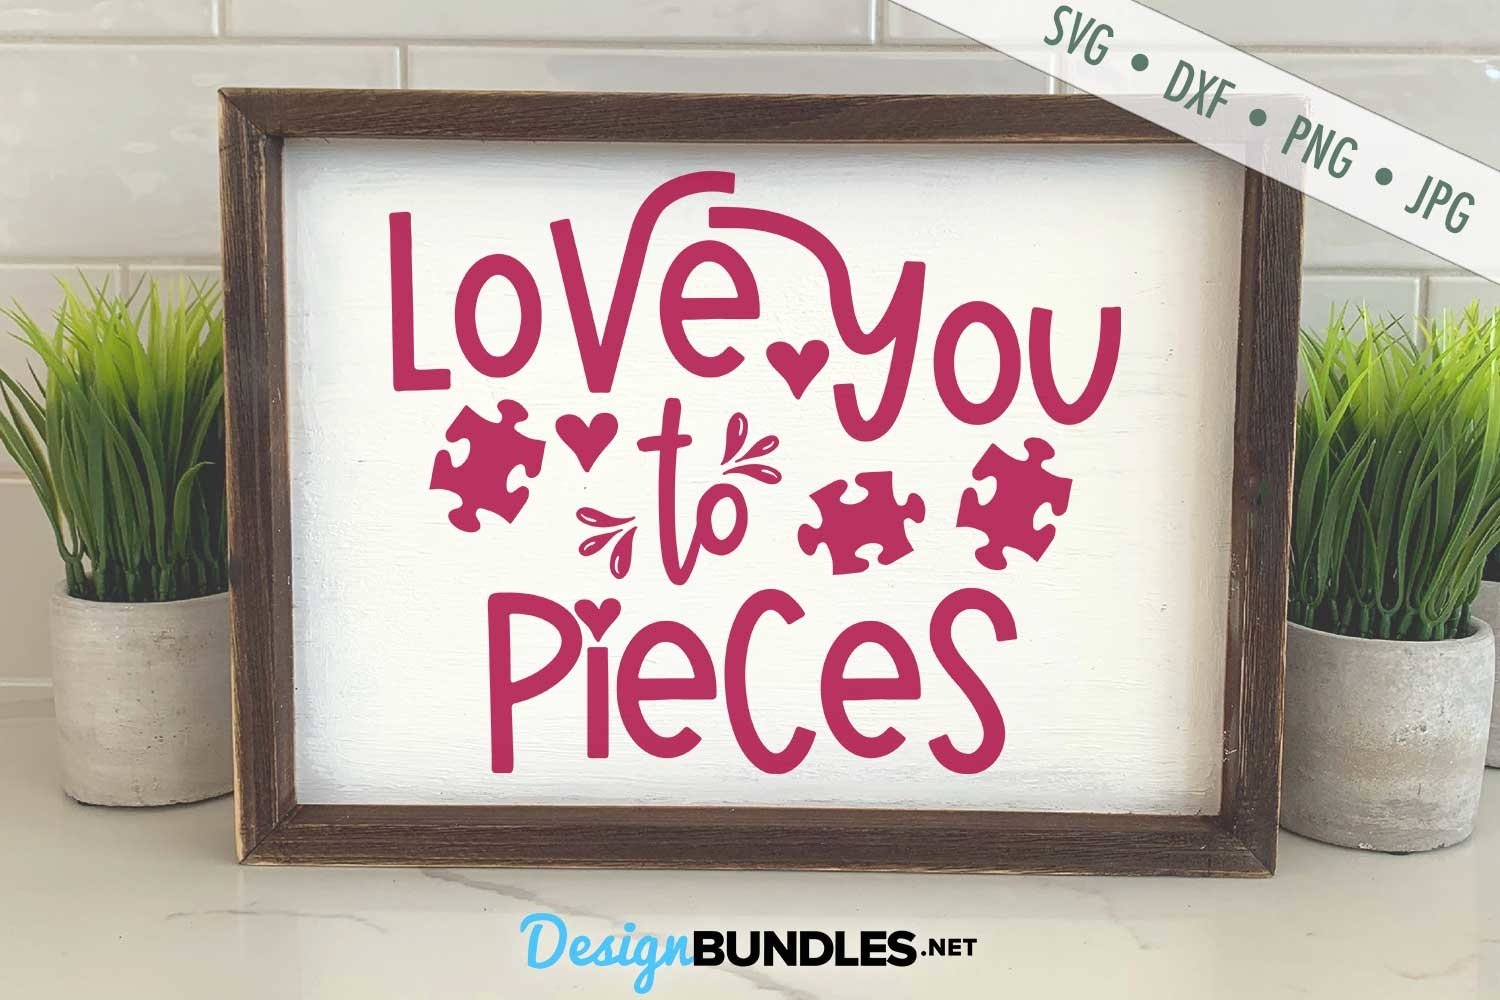 Love You To Pieces SVG   Valentine's Day SVG   Autism SVG example image 1